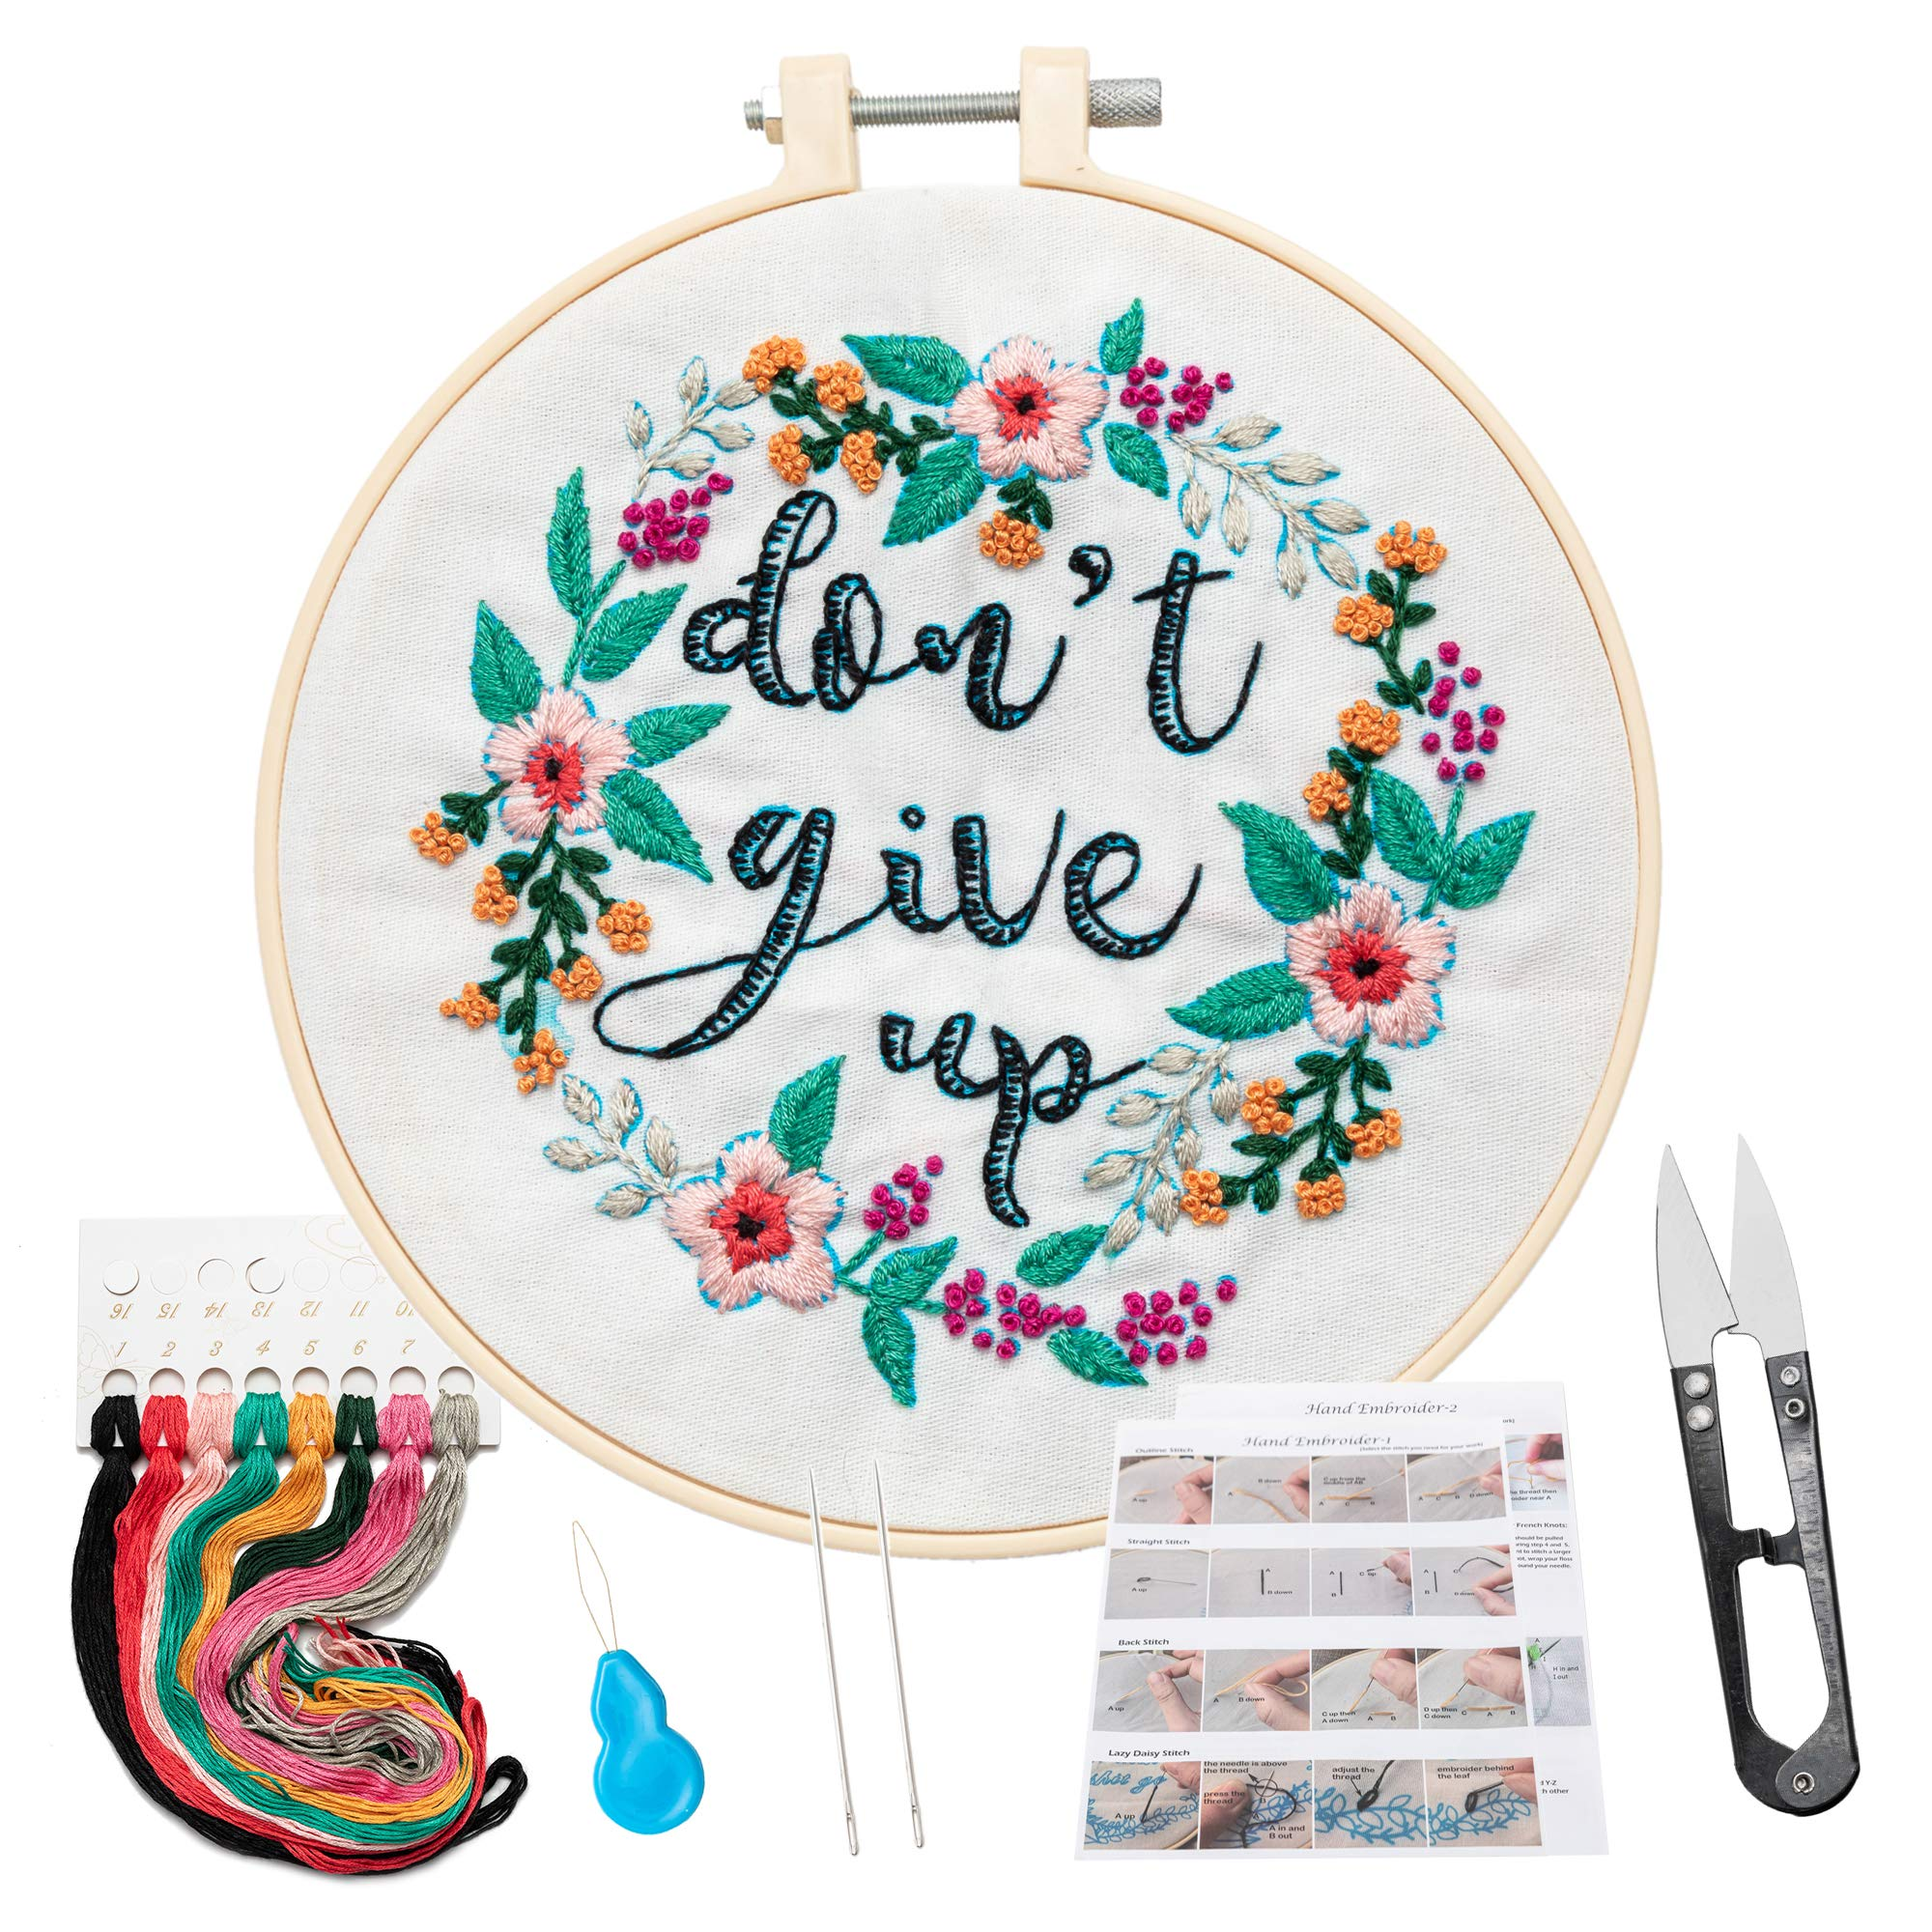 KHALEE Full Set of Hand-Made Embroidery Starter Kit, Cross Stitch Kits for Beginners Including Patterned Embroidery Cloth, Plastic Hoop,Color Floss,Tools Kit(Don't Give Up,6 Inches in Diameter)